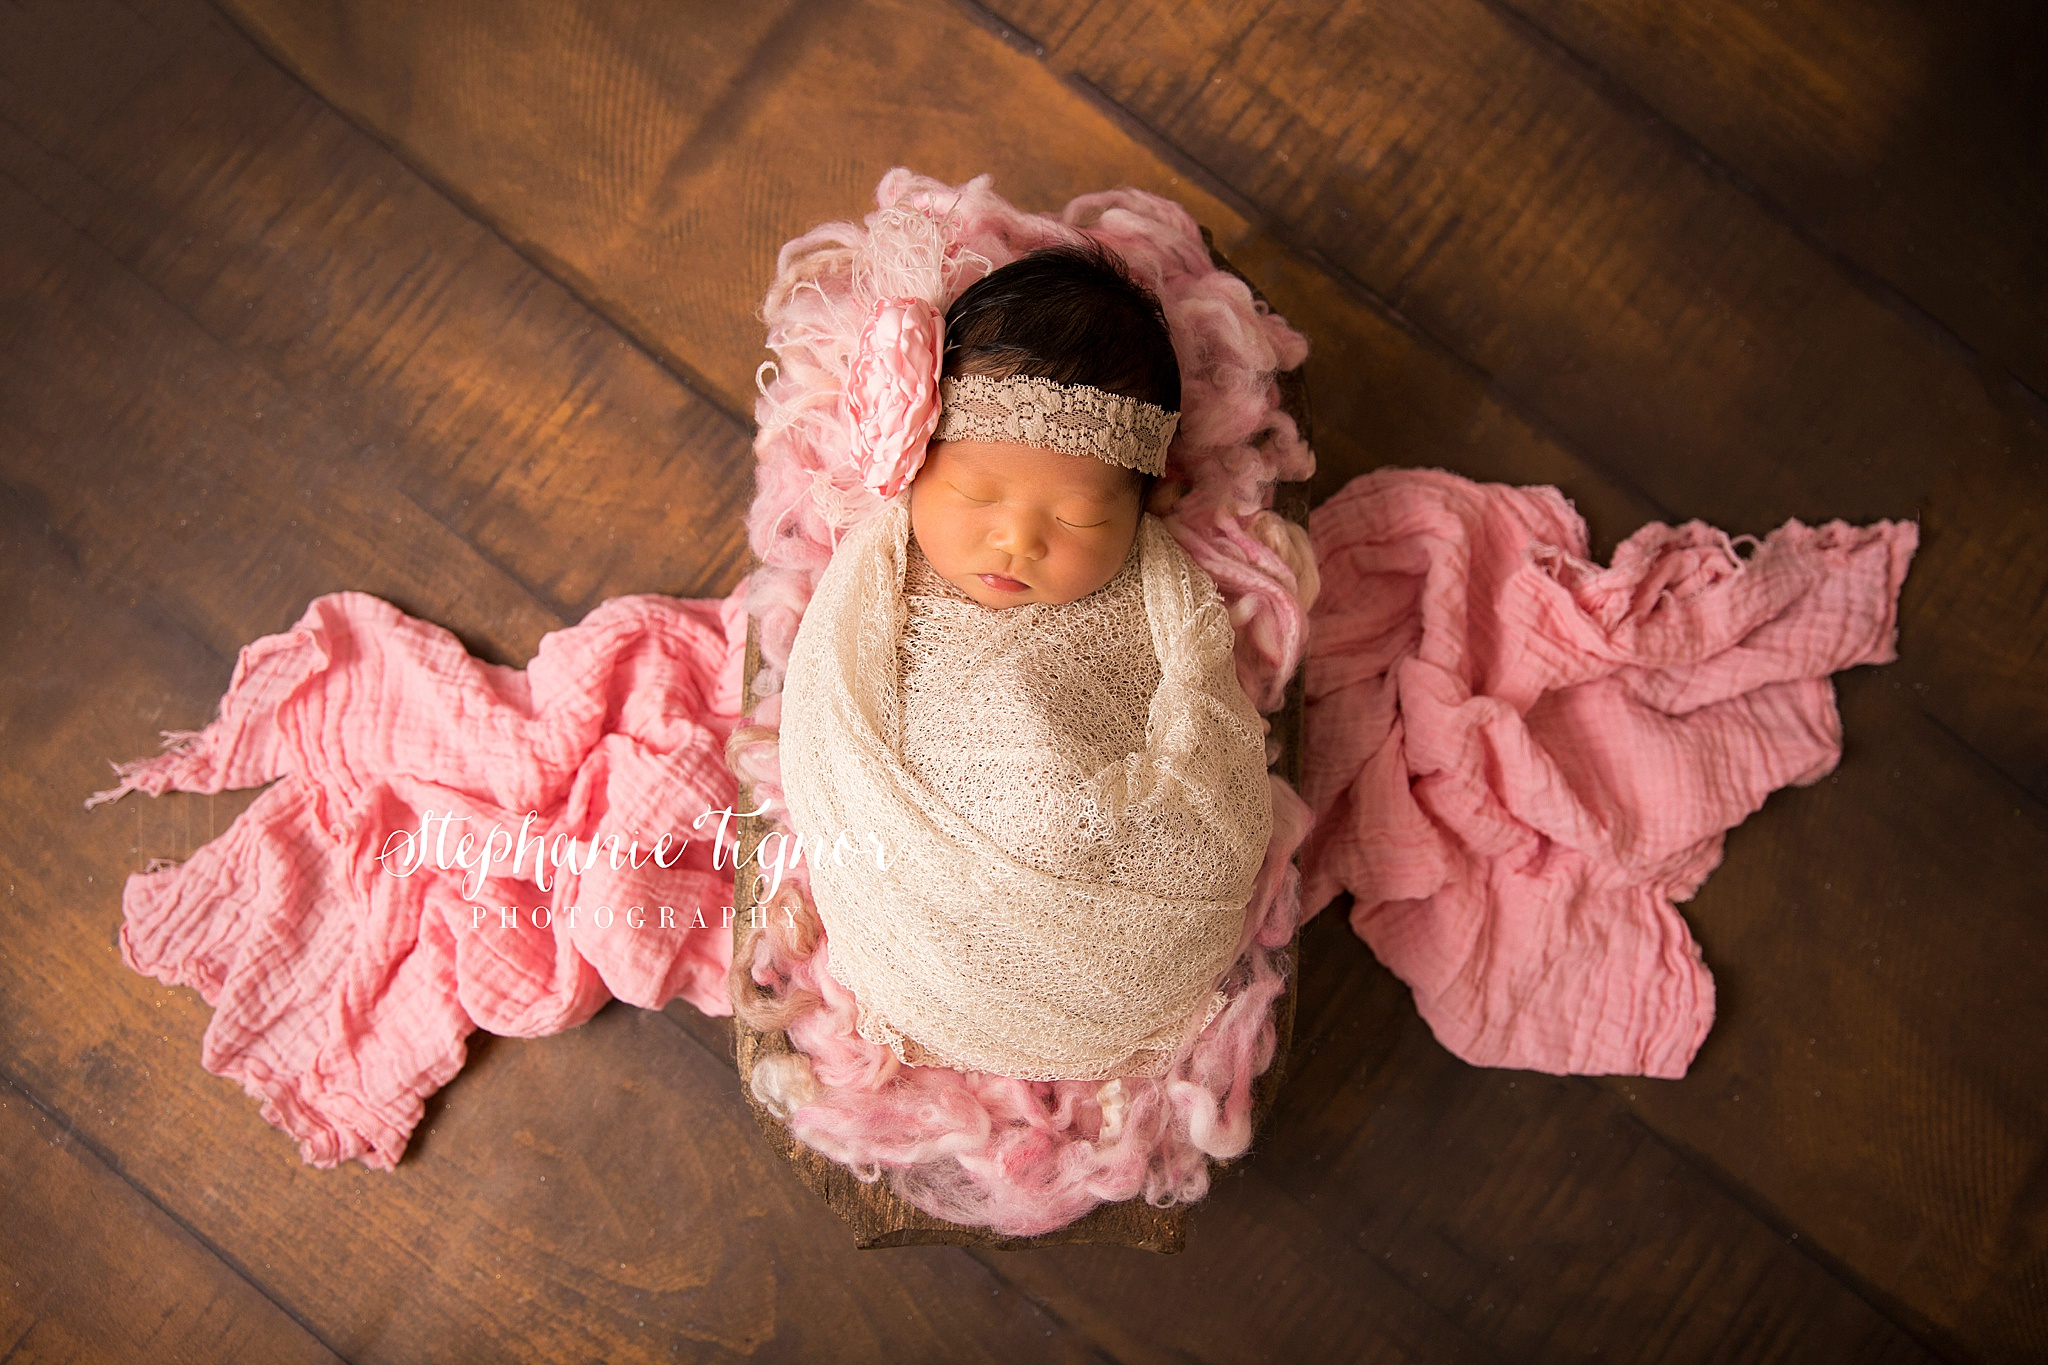 Stephanie Tignor Photography_Newborn Photographer_0069.jpg